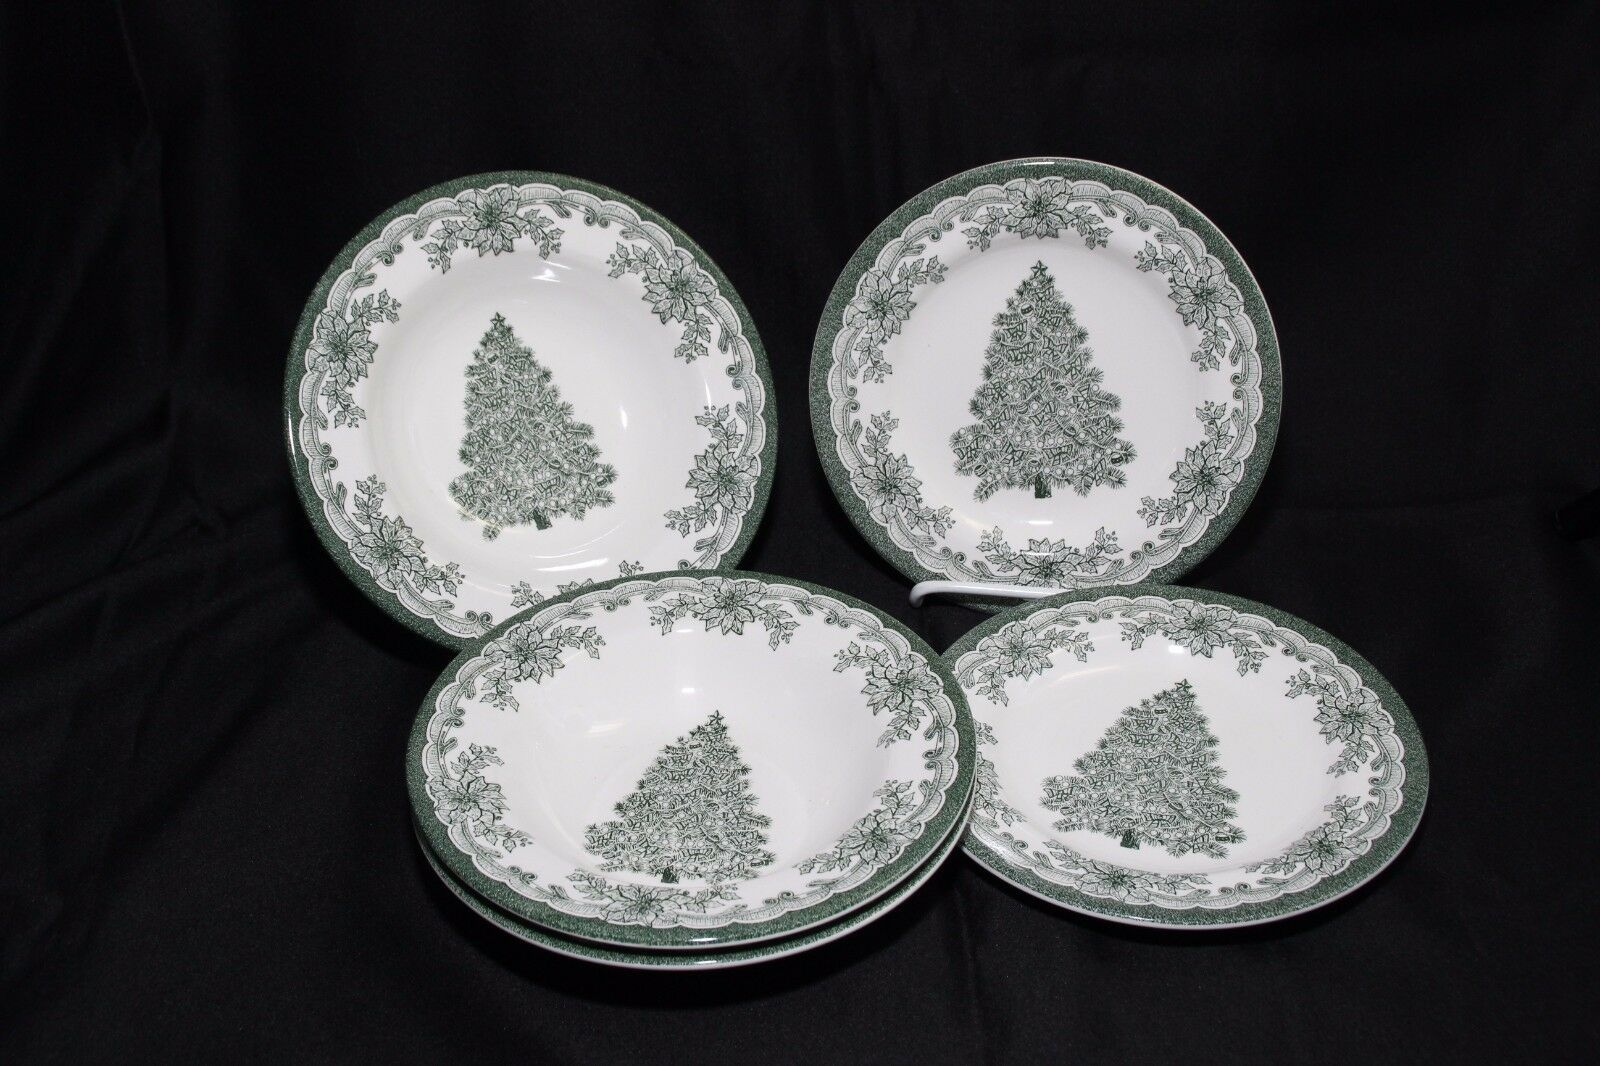 Staffordshire Engravings Yuletide Green Salad Plates and Soup Bowls